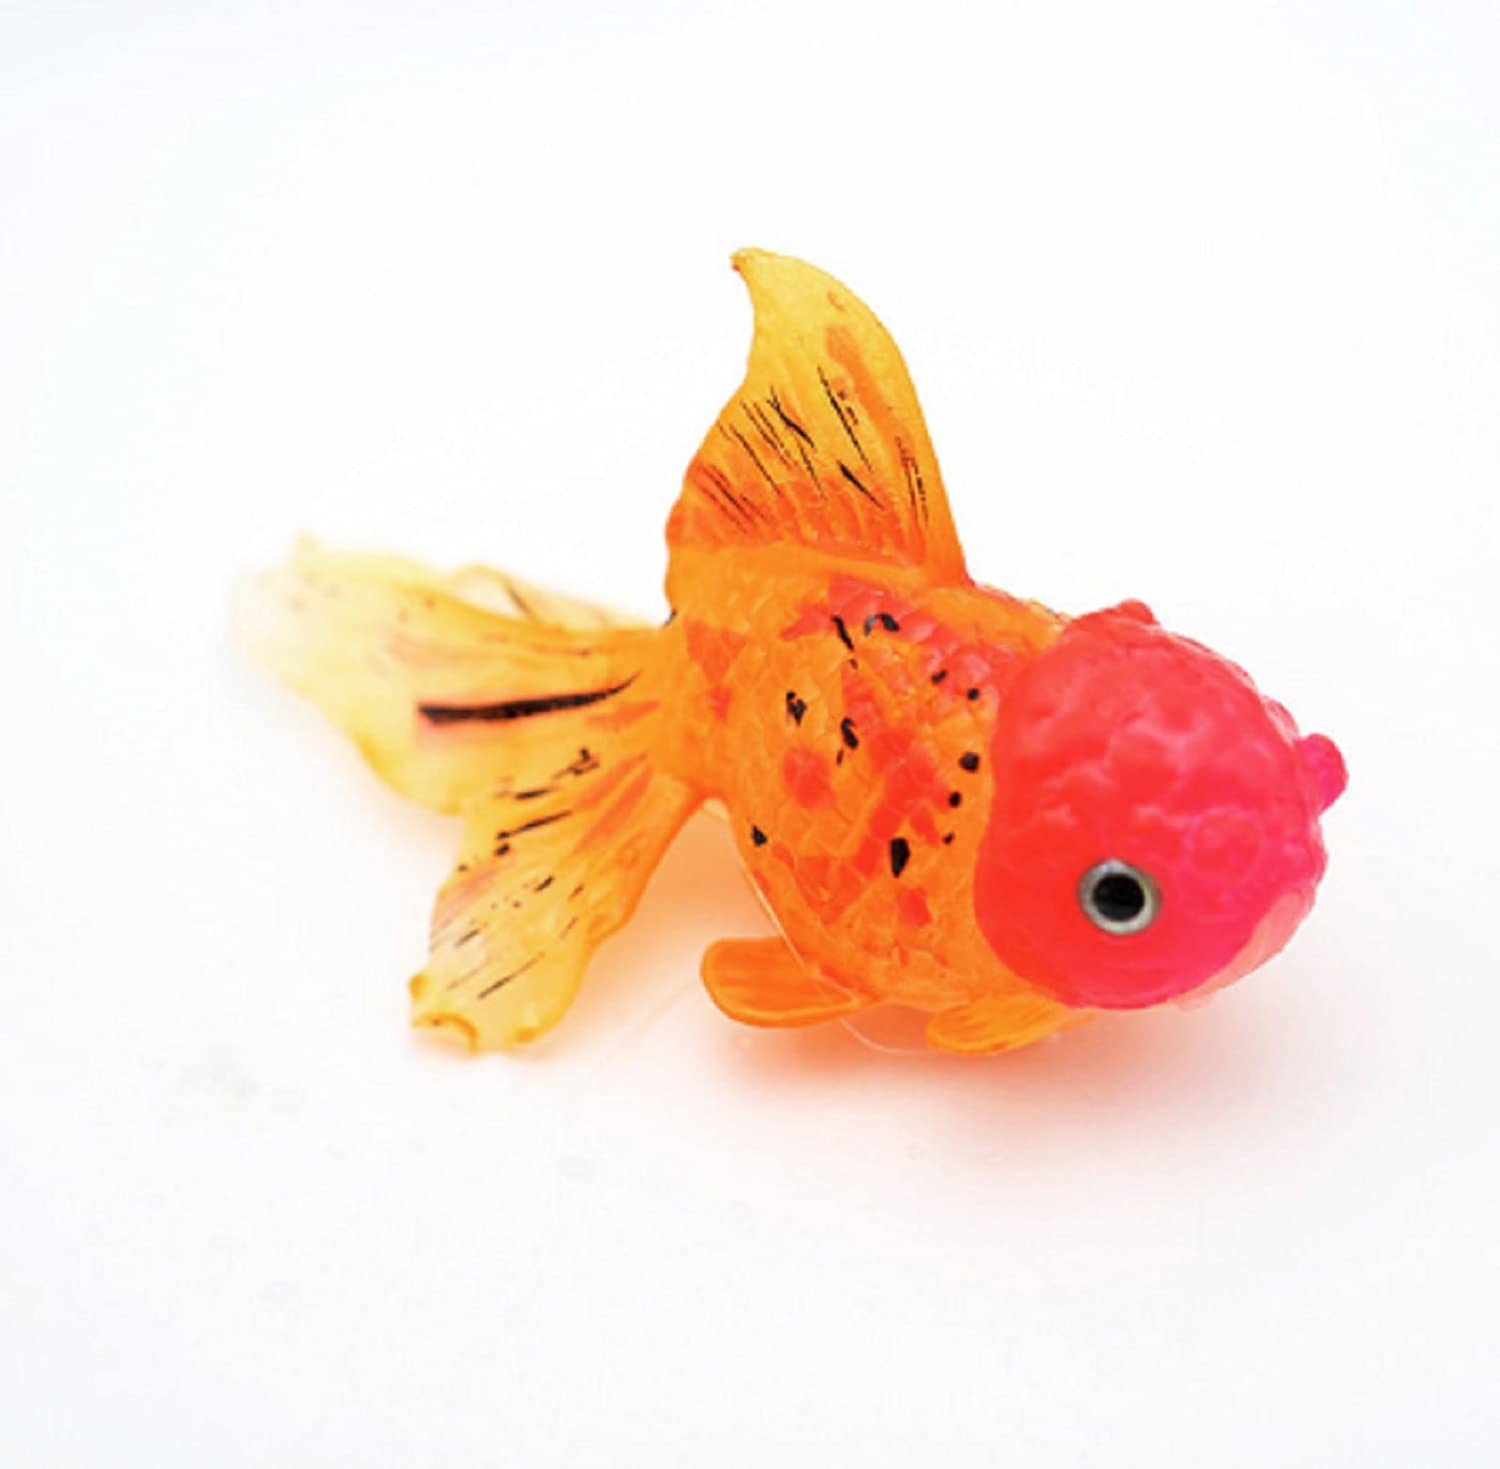 HOT Item! Decor Goldfish Aquarium Decoration Artificial Glowing Effect Fish Tank Glow in The Dark Ornament